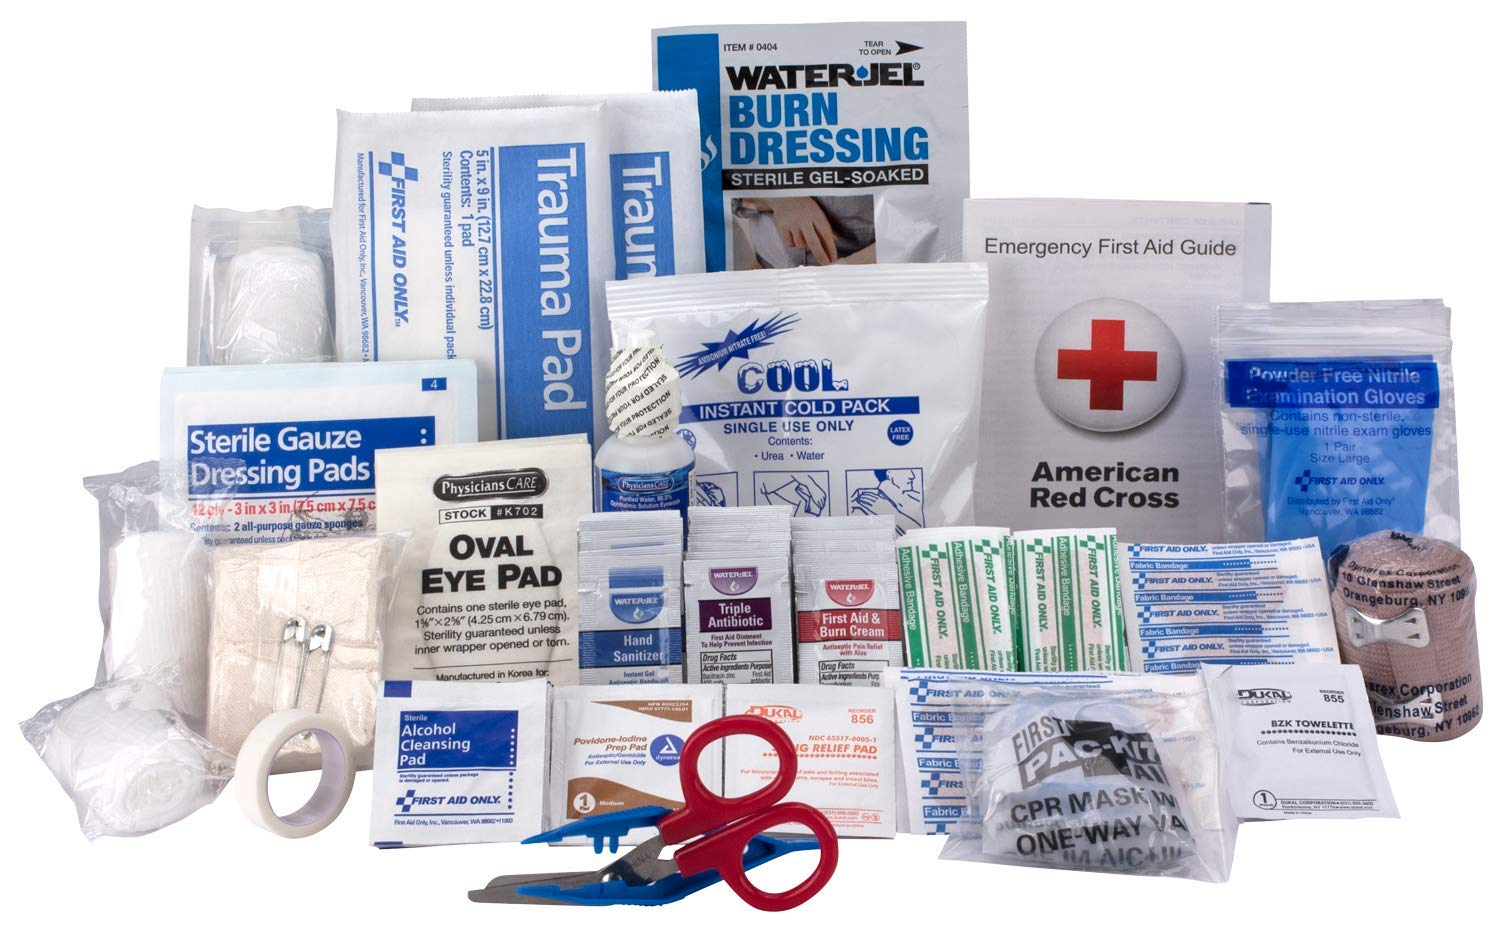 Xpress First Aid 183 Piece Refill Pack, ANSI/OSHA Compliant by Xpress First Aid